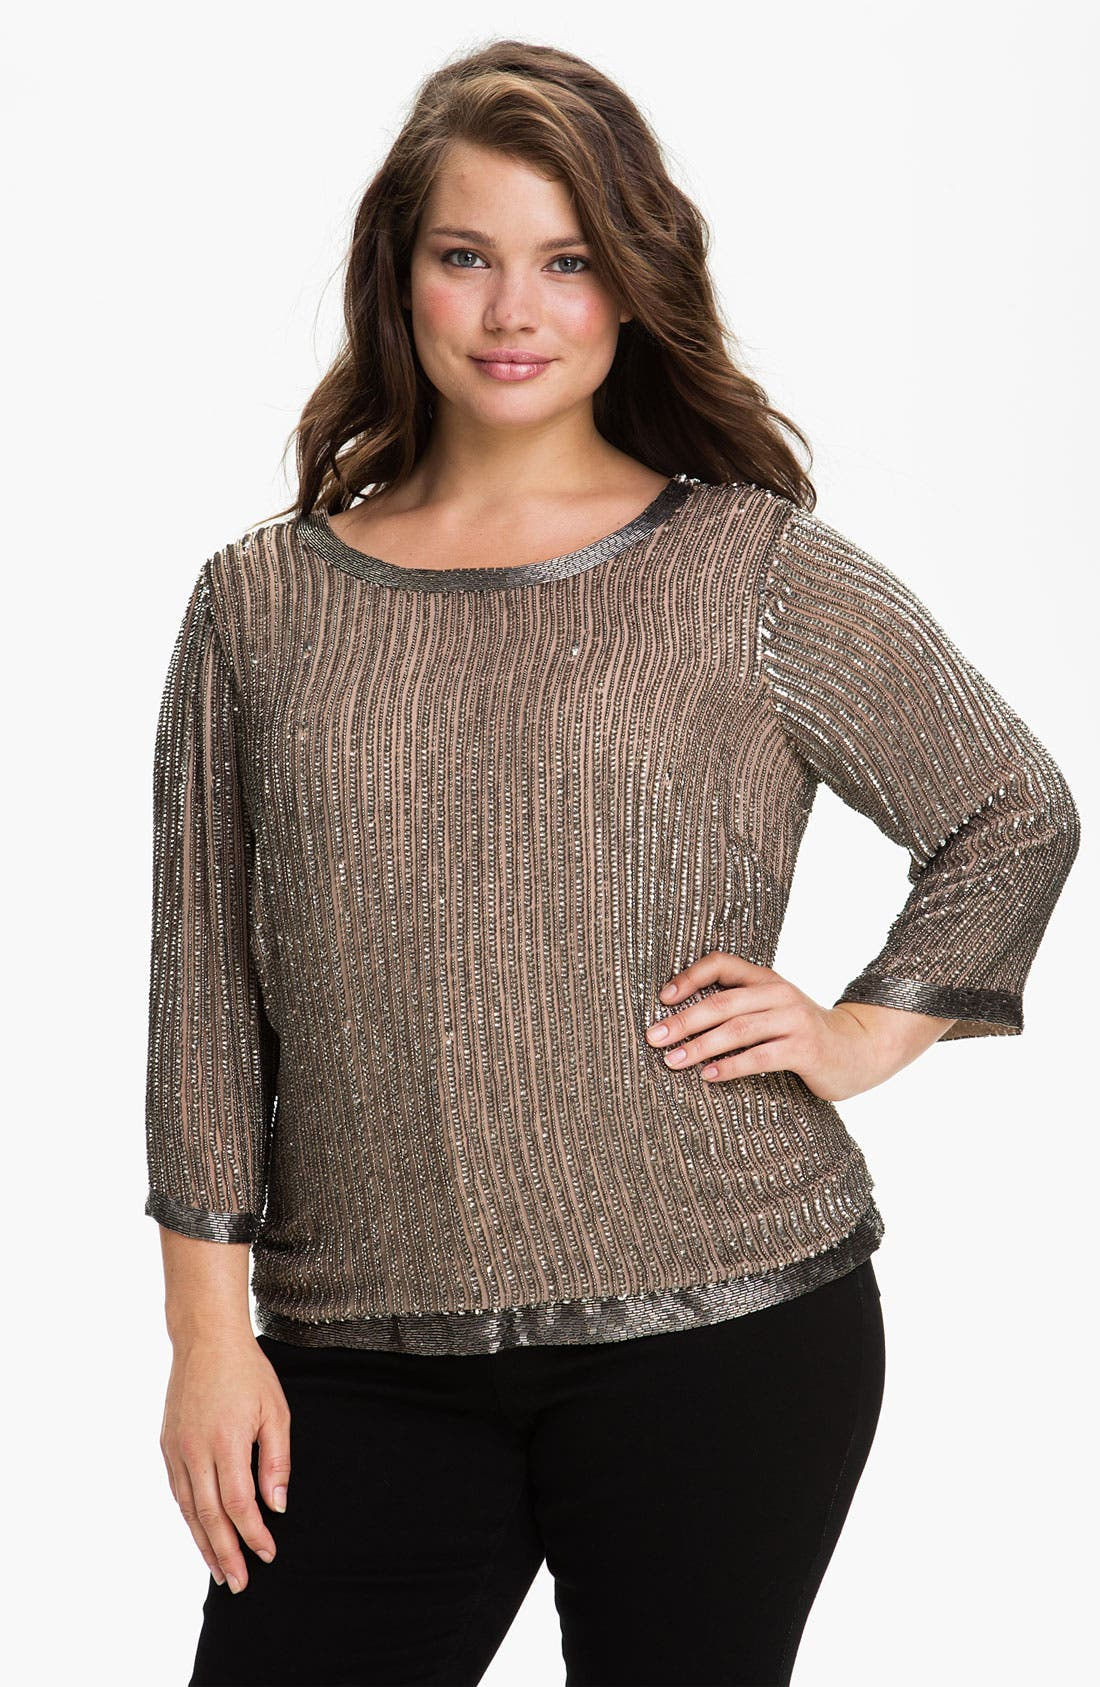 Alternate Image 1 Selected - Adrianna Papell Beaded Back Scoop Neck Top (Plus)